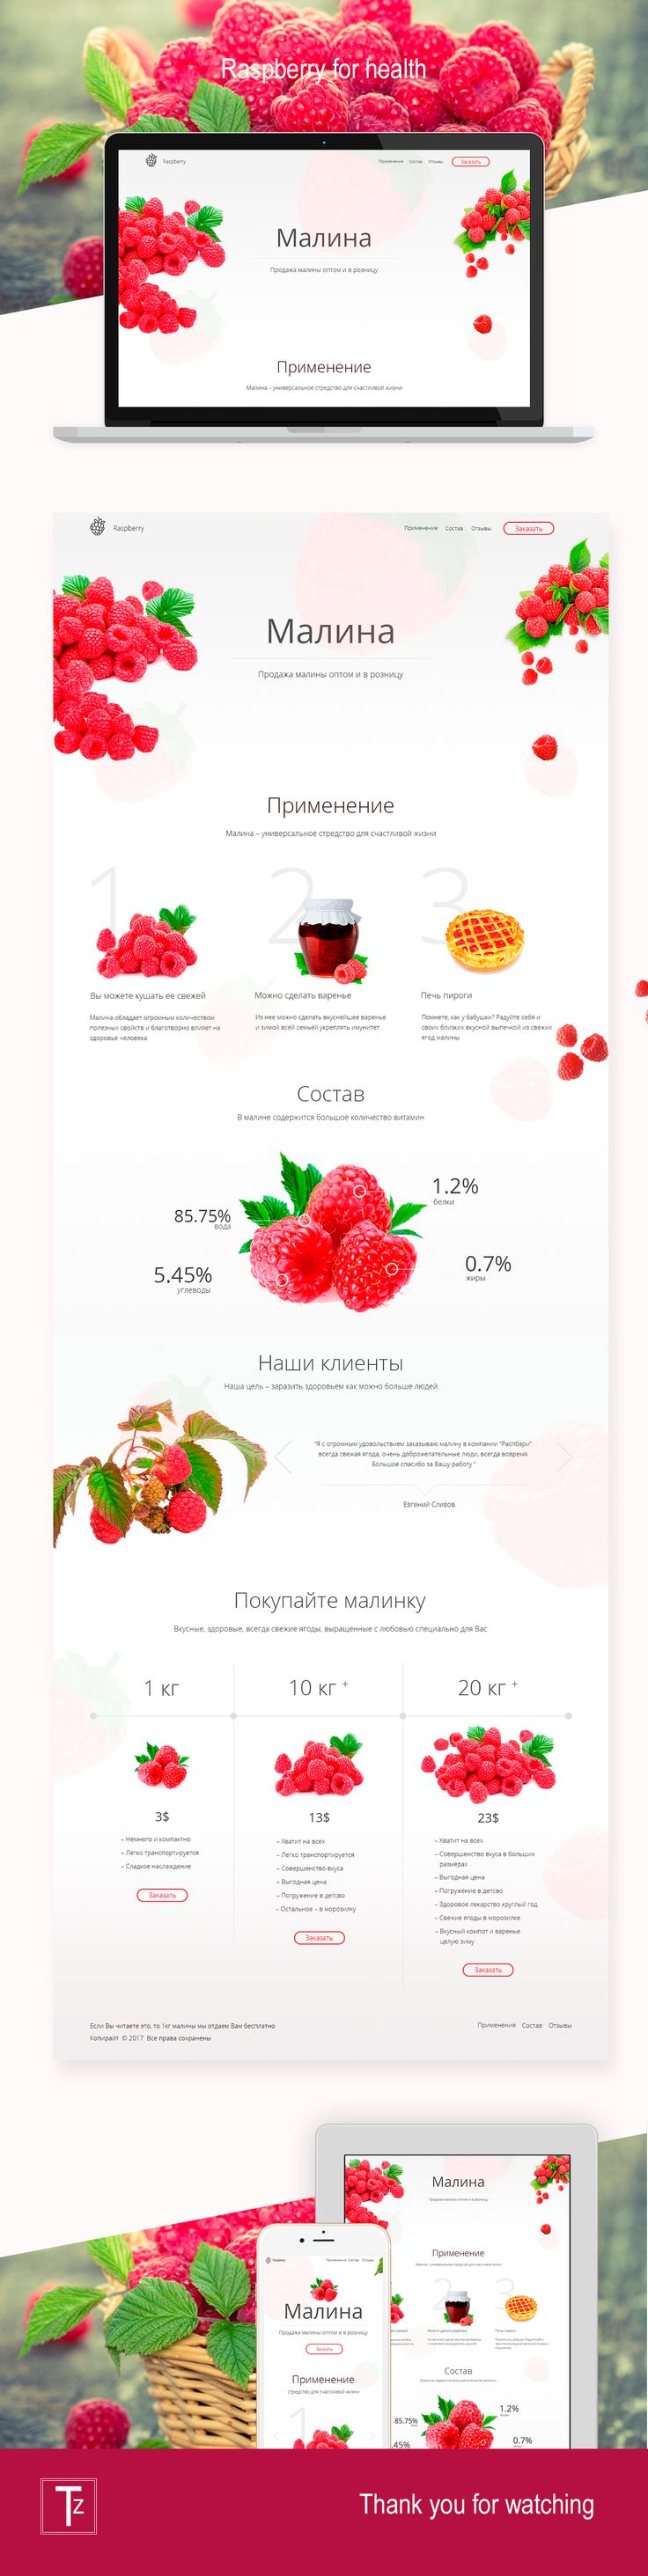 Landing page for selling raspberry